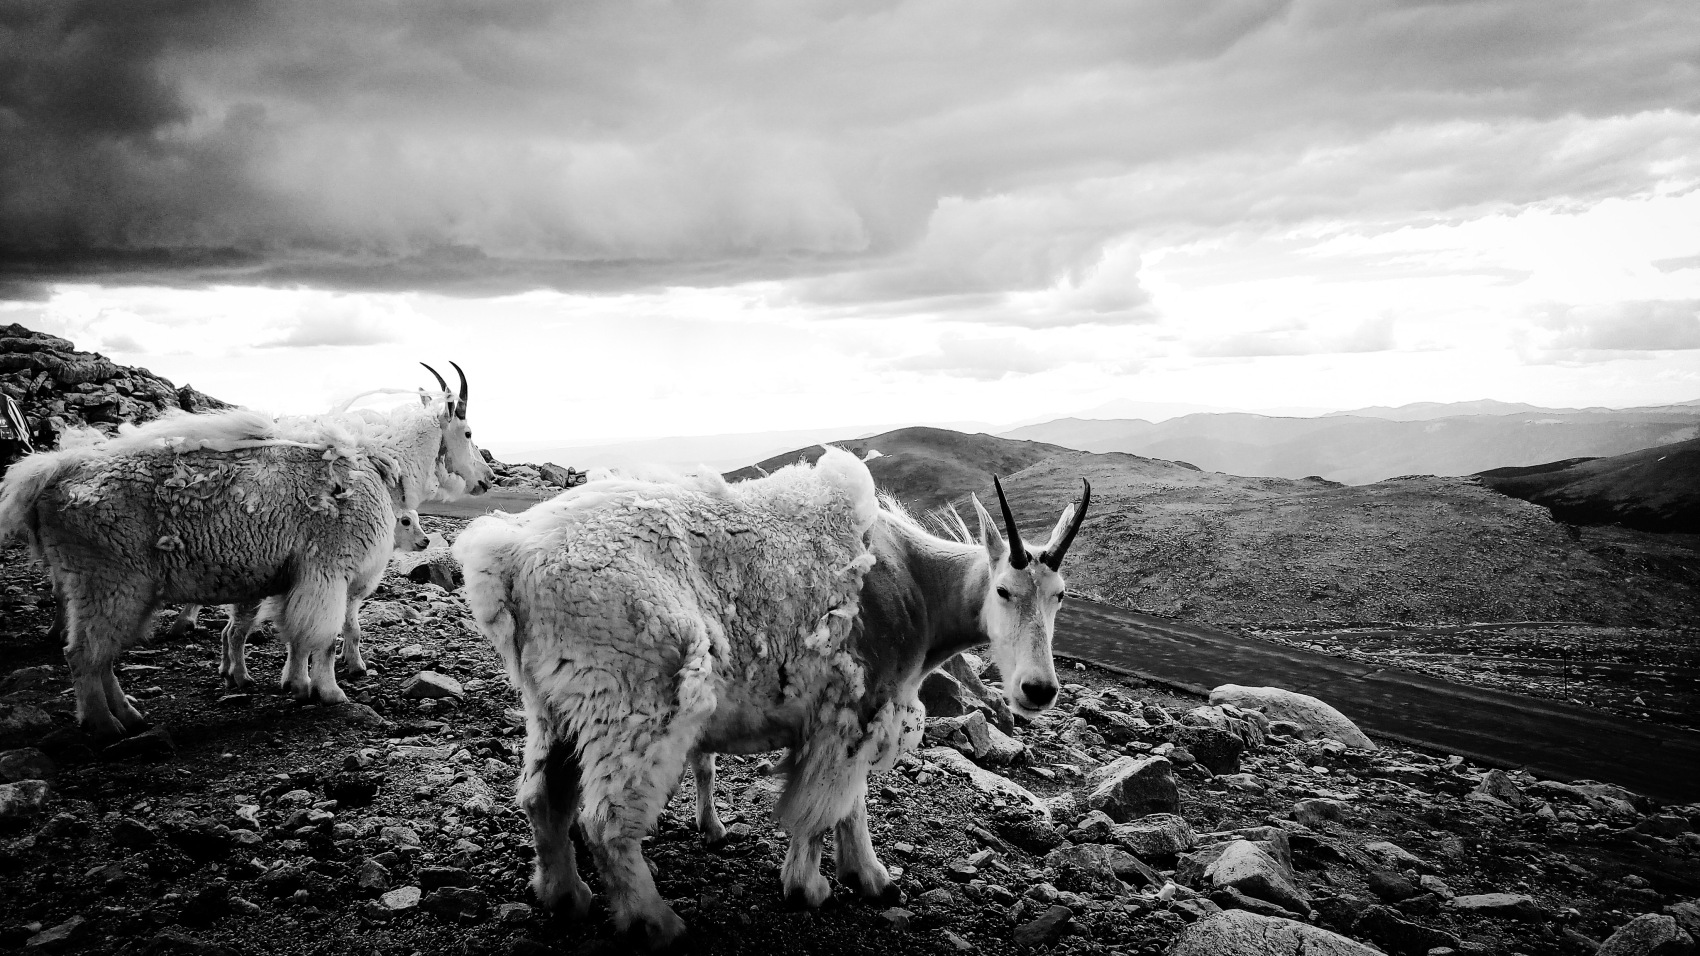 Nature photo – Clear Creek County, Colorado, US. 'Mount Evans.' Photograph from my latest travel art blog article 'Wild Colorado.' Now online - sketchbookexplorer.com @davidasutton @sketchbookexplorer Facebook.com/davidanthonysutton #photograph #photography #blackandwhite #us #clearcreek #colorado #mountevans #rockymountains #wild #travel #travelblog #unitedstates #northamerica #nature